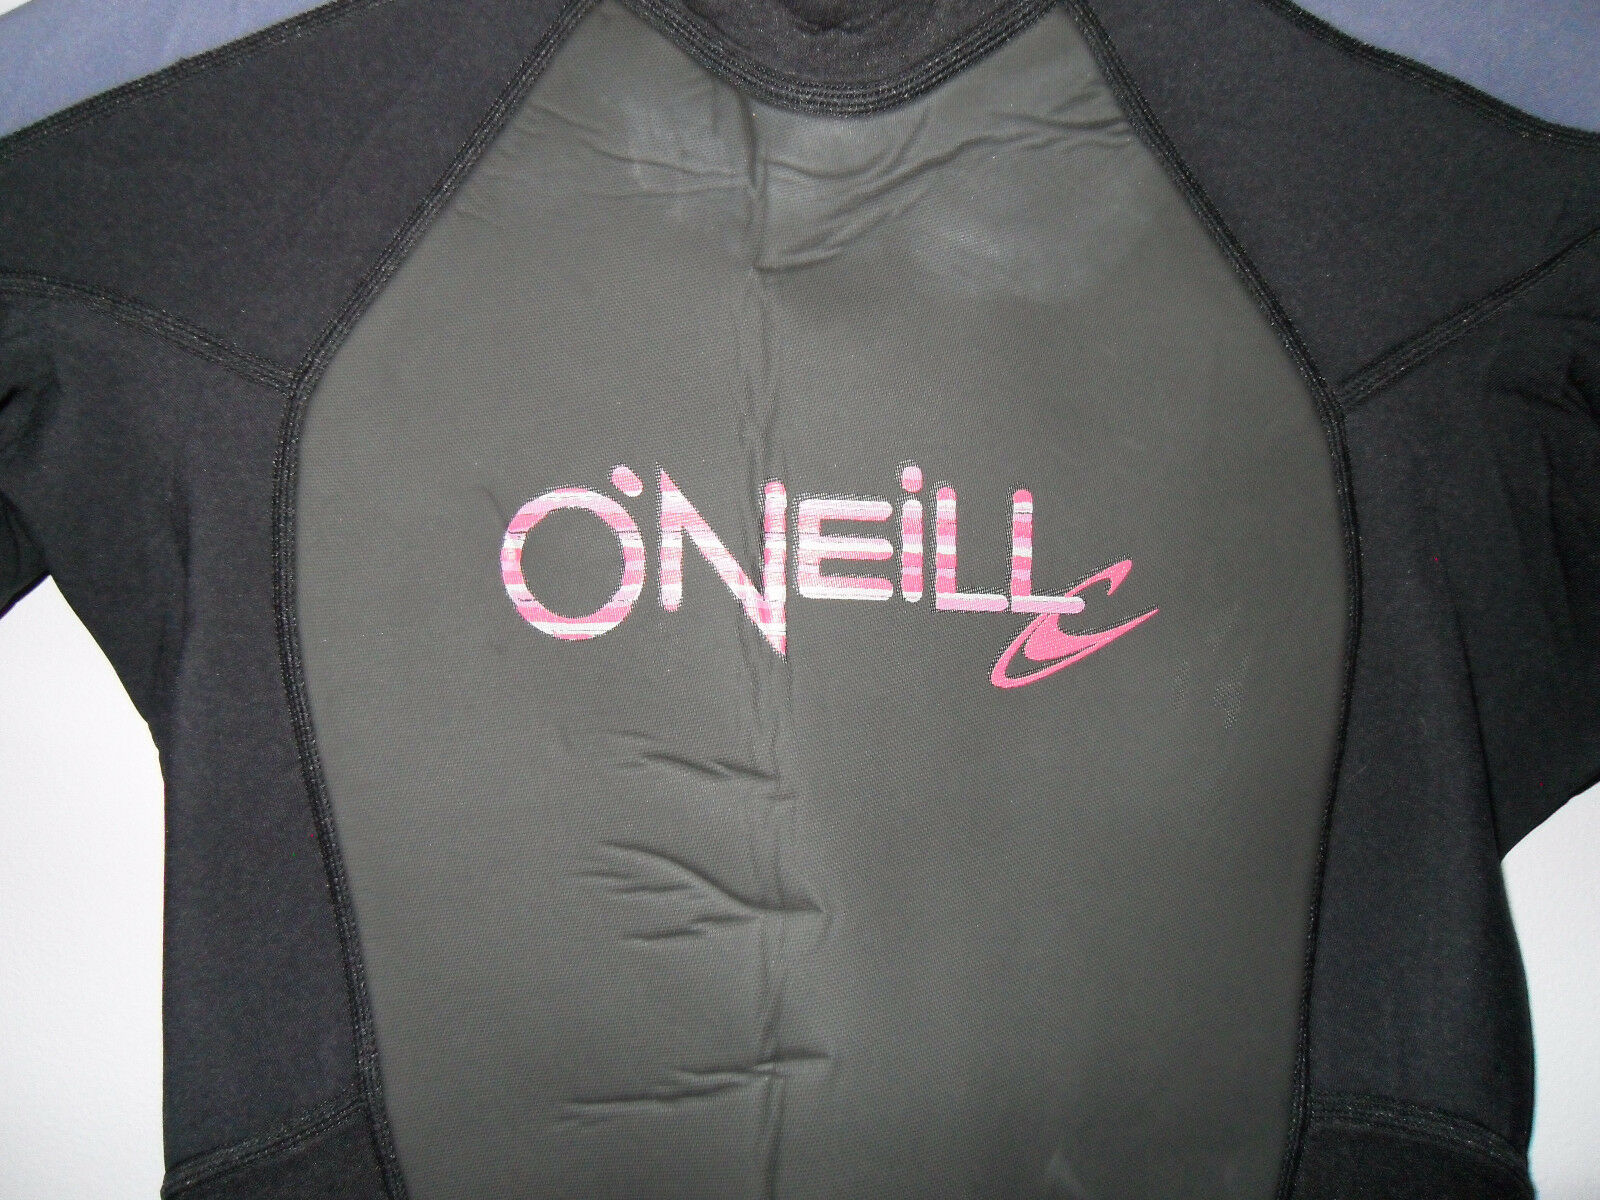 NEW  O'Neill Full Wetsuit Size 6  save on clearance